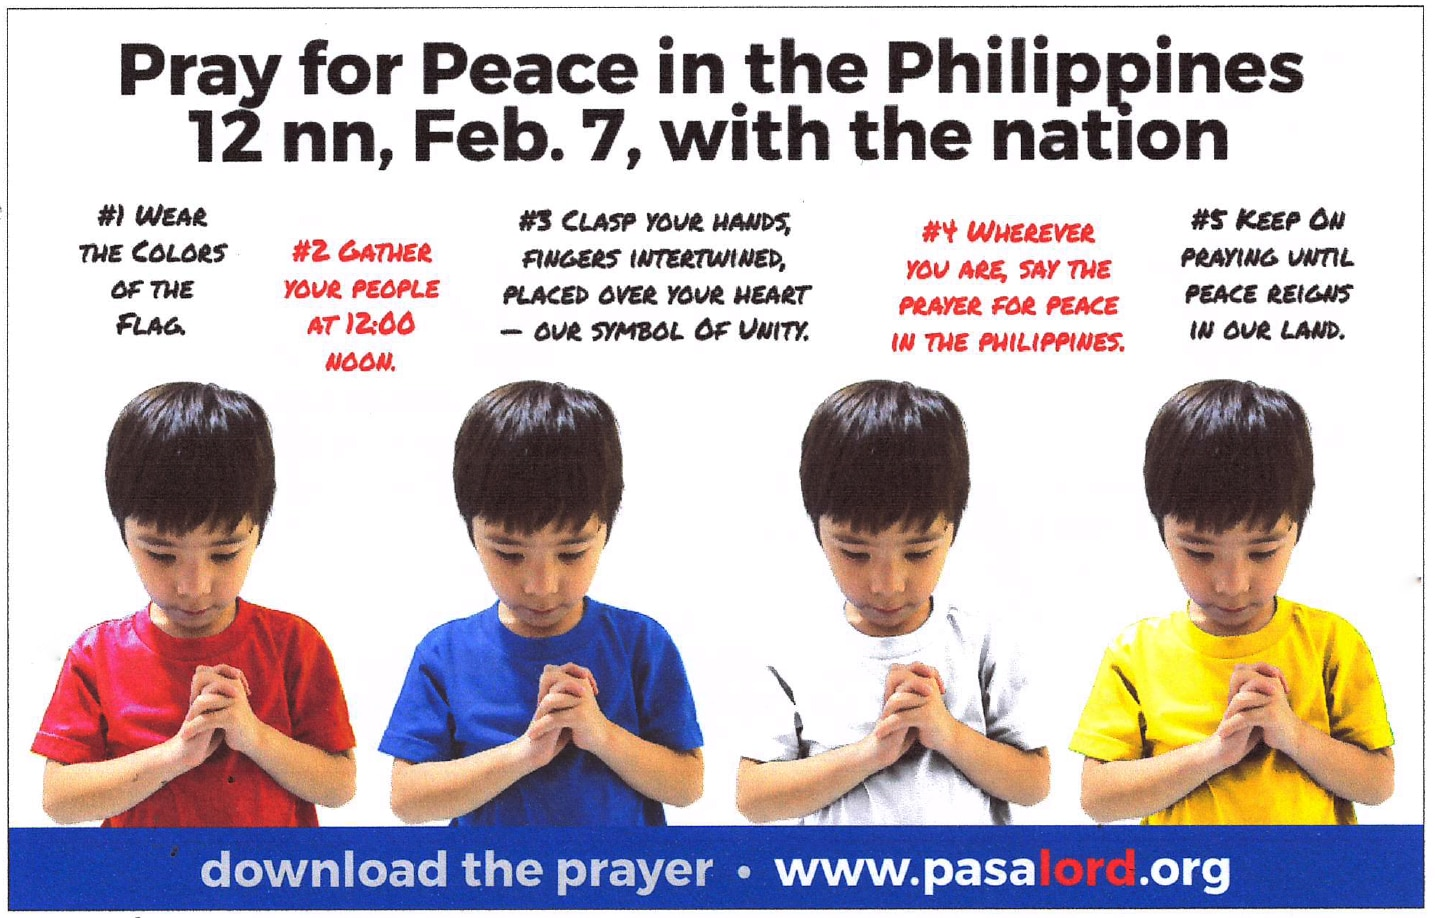 On February 7, the entire nation will pray for peace in the Philippines